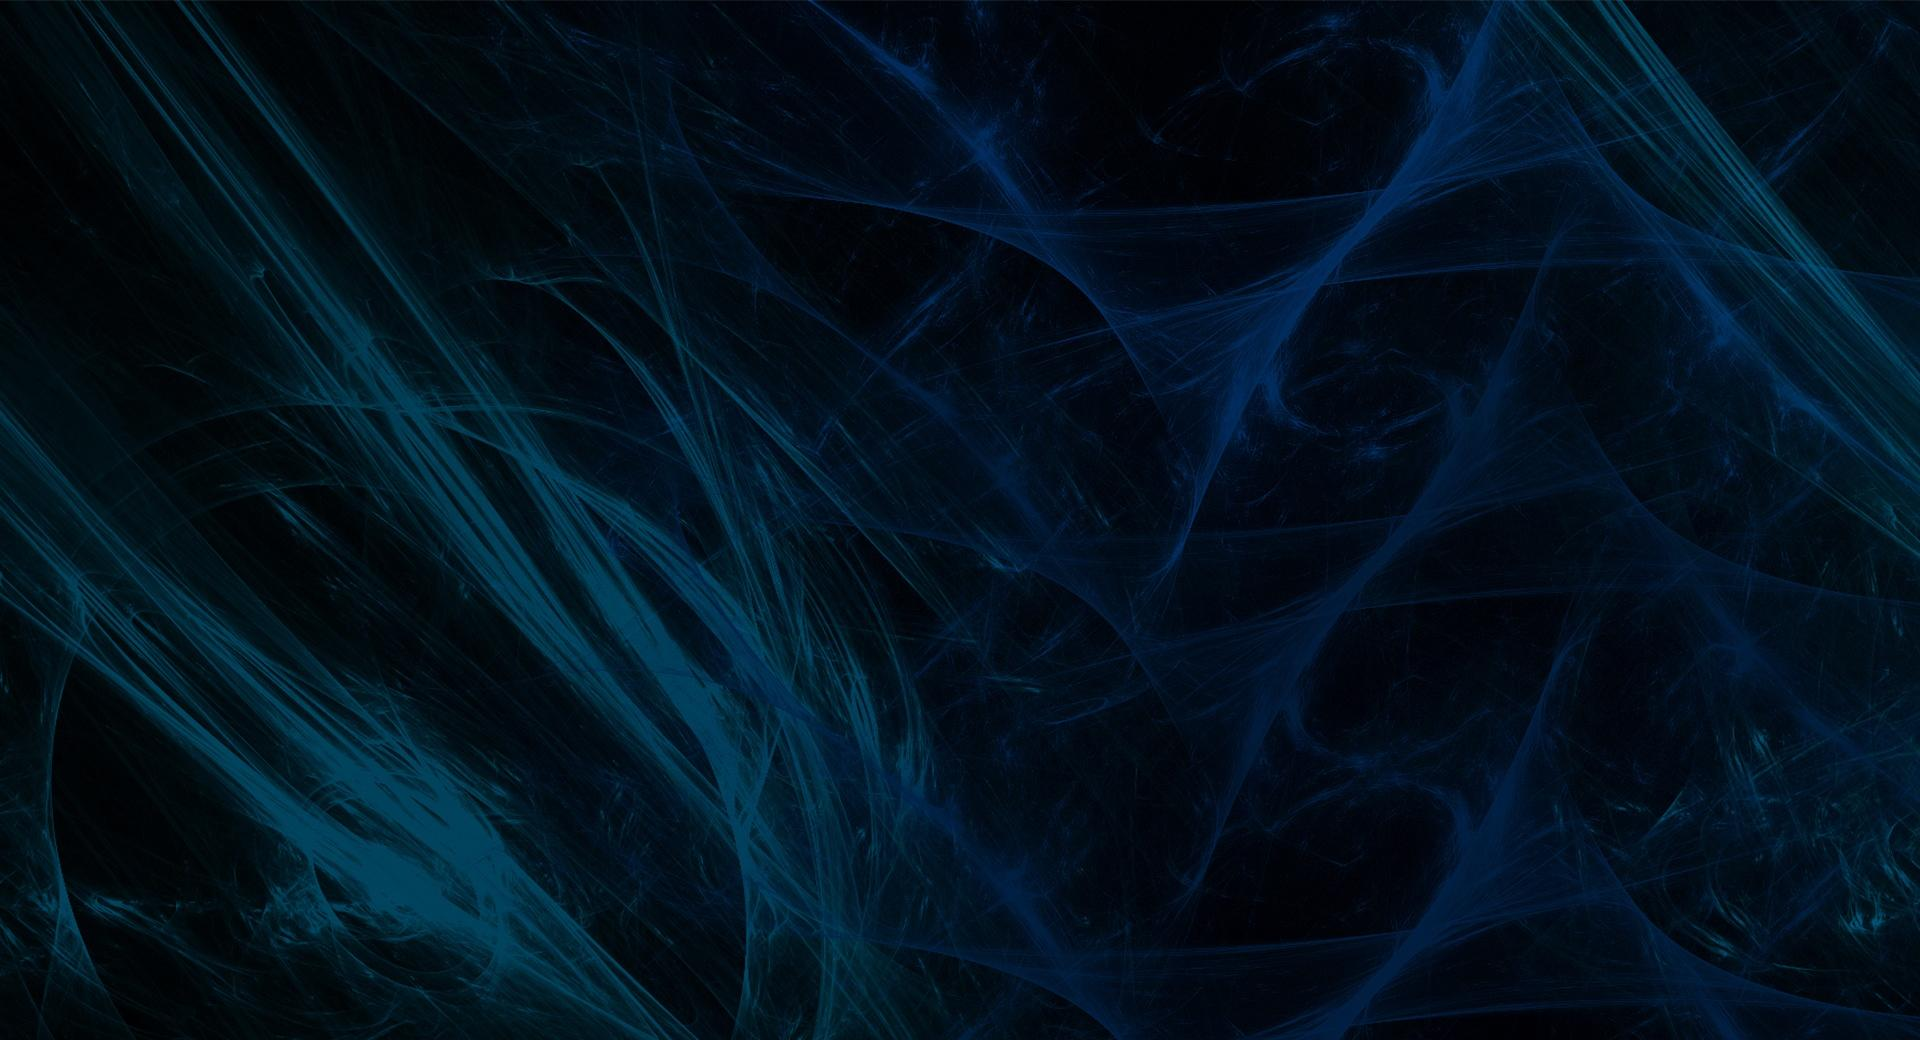 Blue Galaxy wallpapers HD quality